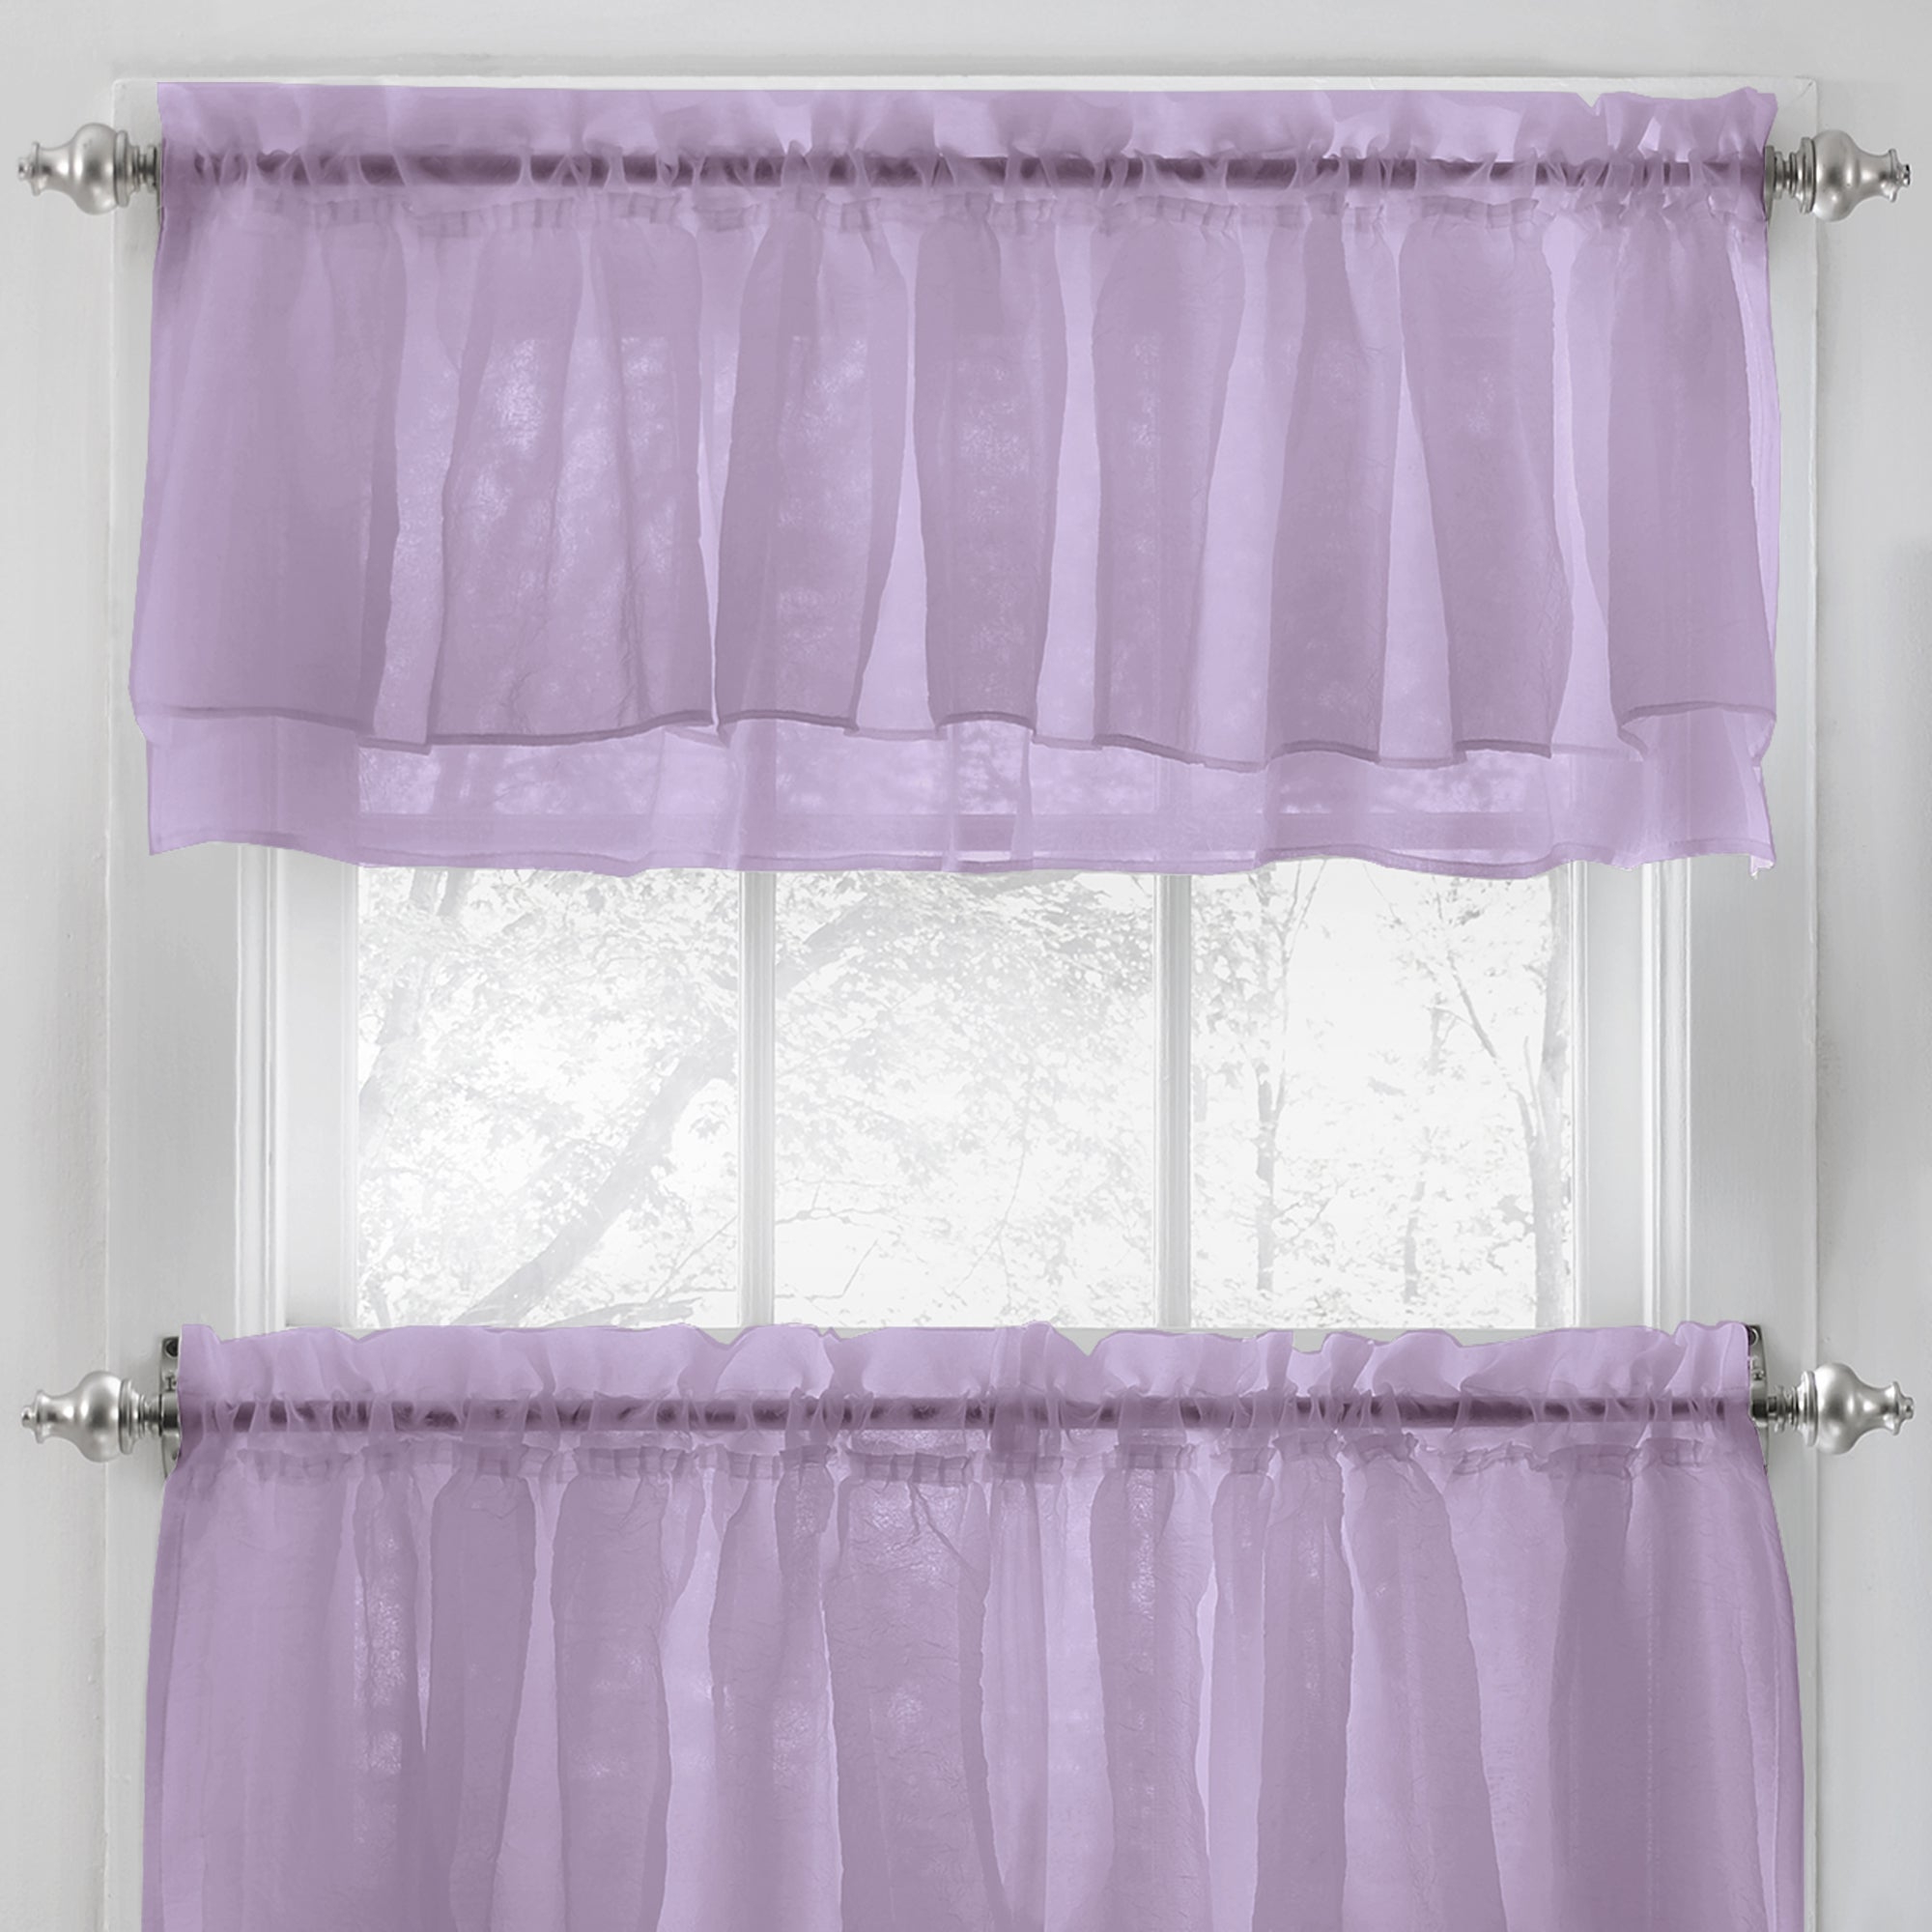 Elegant Crushed Voile Ruffle Blue/white/pink/purple/beige Window Curtain Pieces With Optional Valance And Tiers Throughout Well Known Elegant Crushed Voile Ruffle Window Curtain Pieces (View 10 of 20)